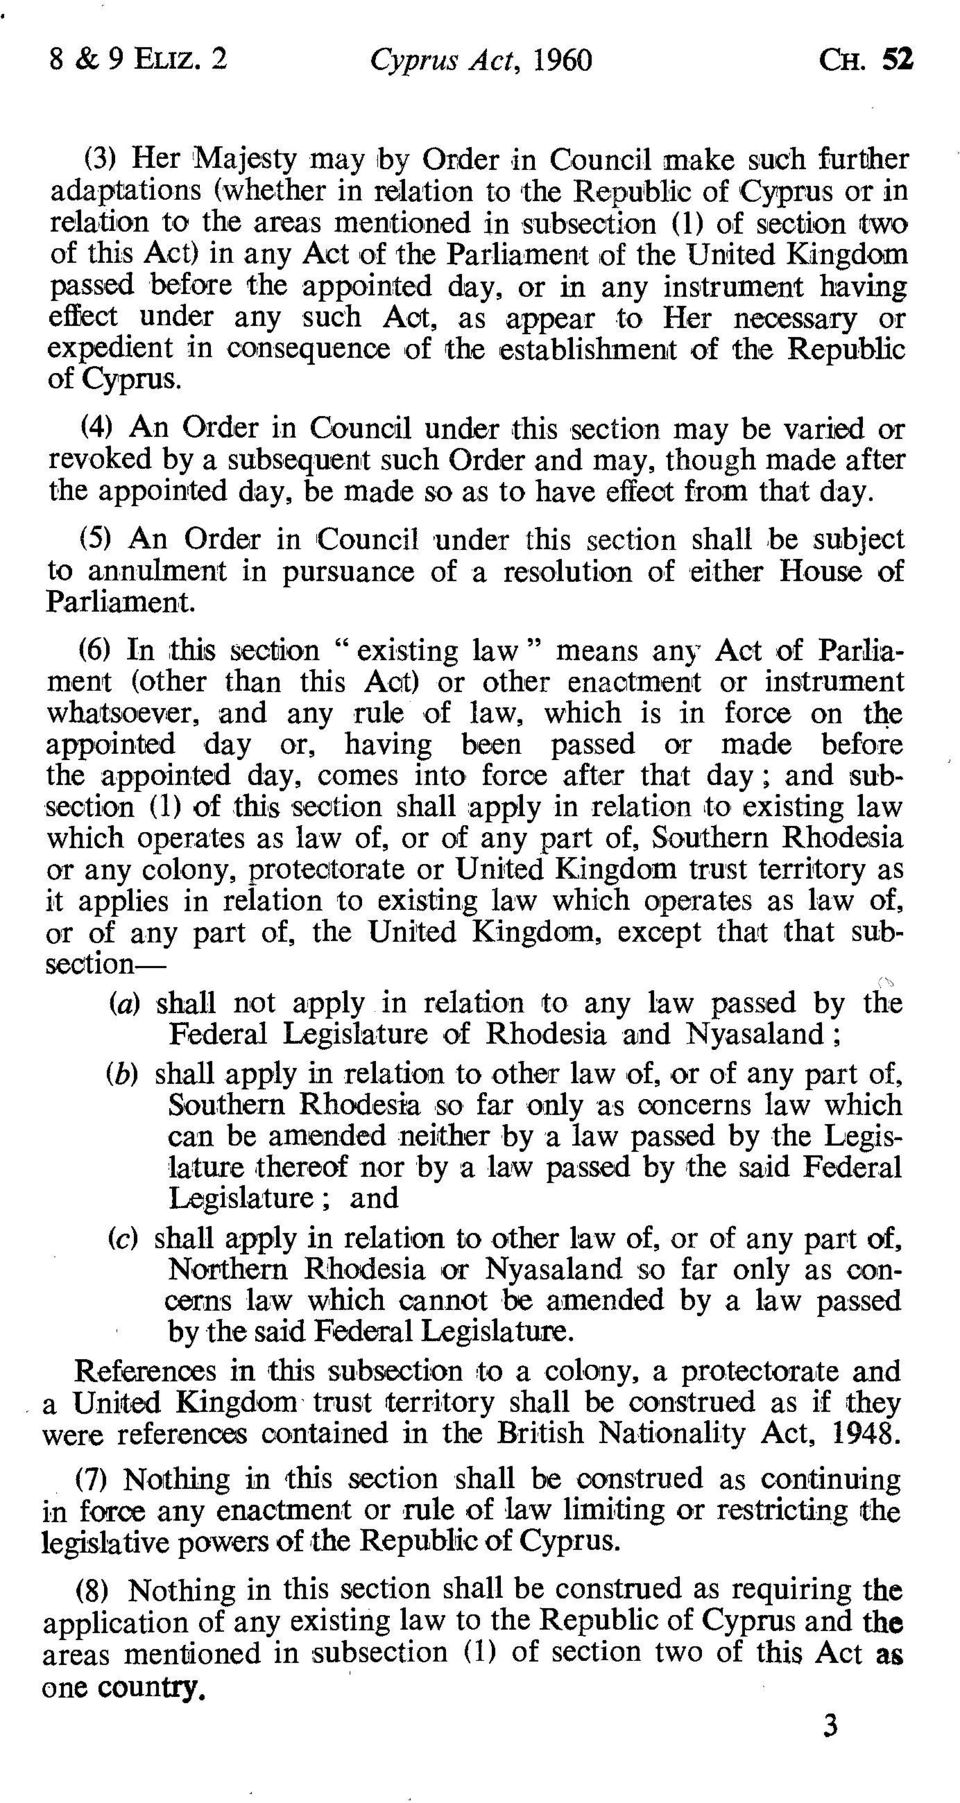 Act) in any Act of the Parliament of the United Kingdom passed before the appointed day, or in any instrument having effect under any such Act, as appear to Her necessary or expedient in consequence